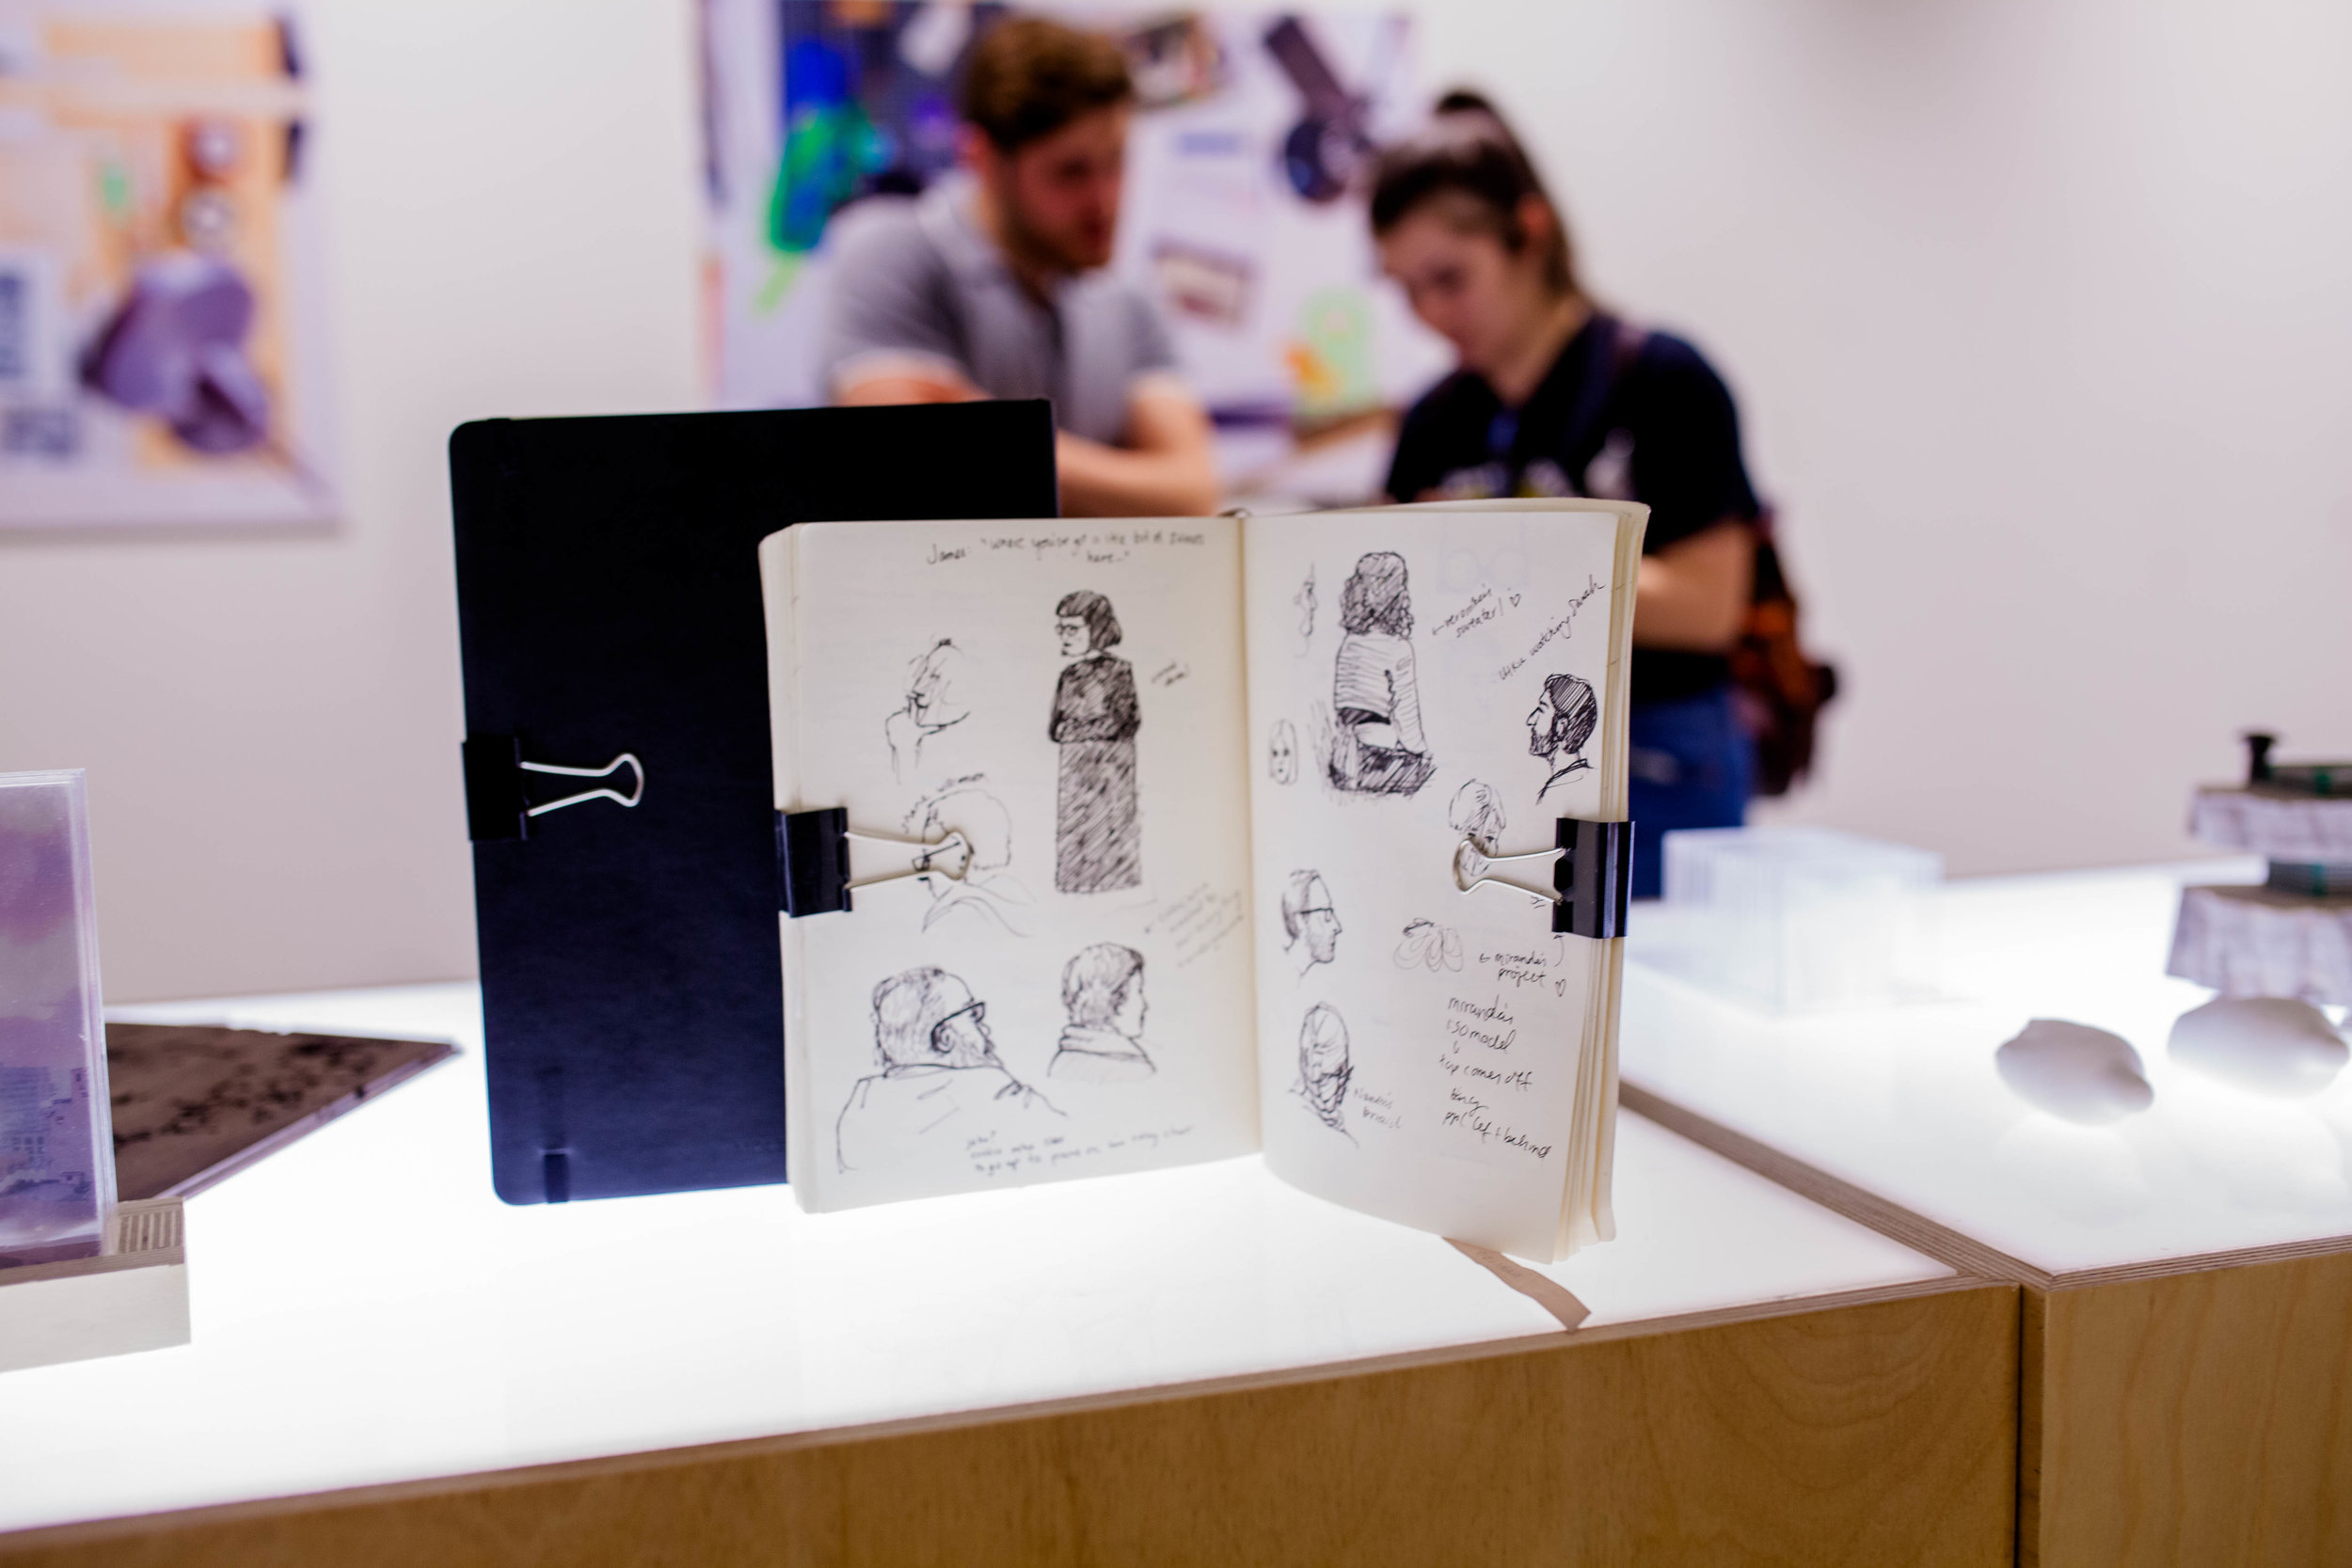 Student sketchbooks on display.